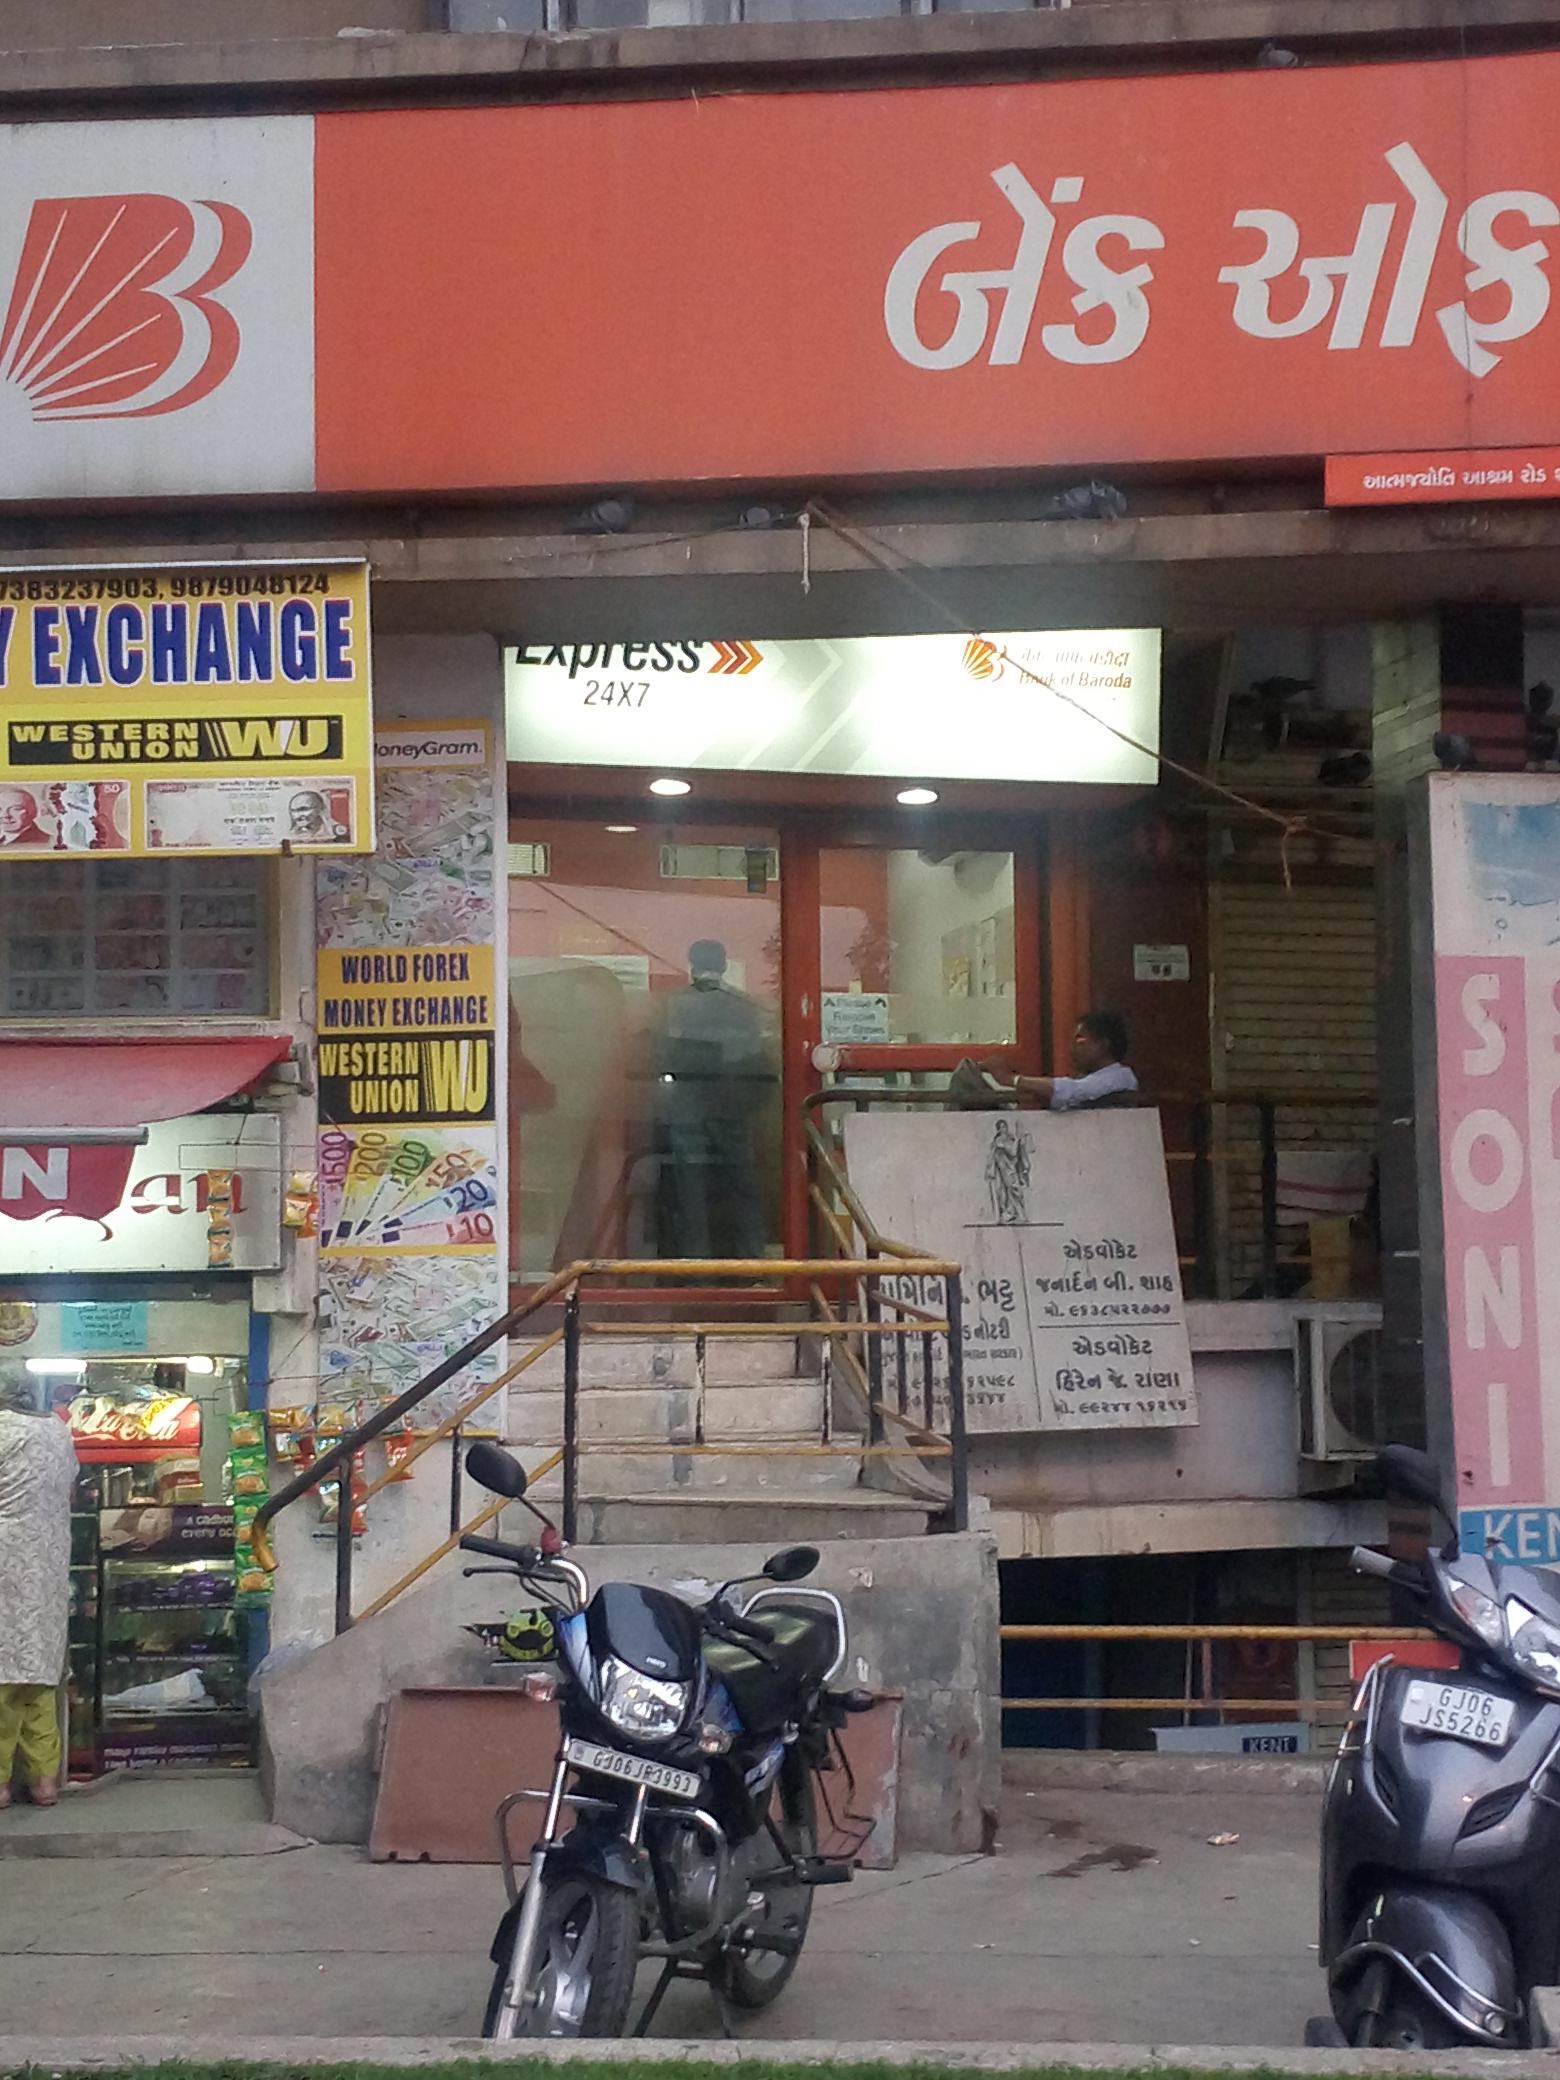 Bank Of Baroda ATM Atmajyoti Race course road is without Ramp and having awkaward steps Inaccessible for all Divyang